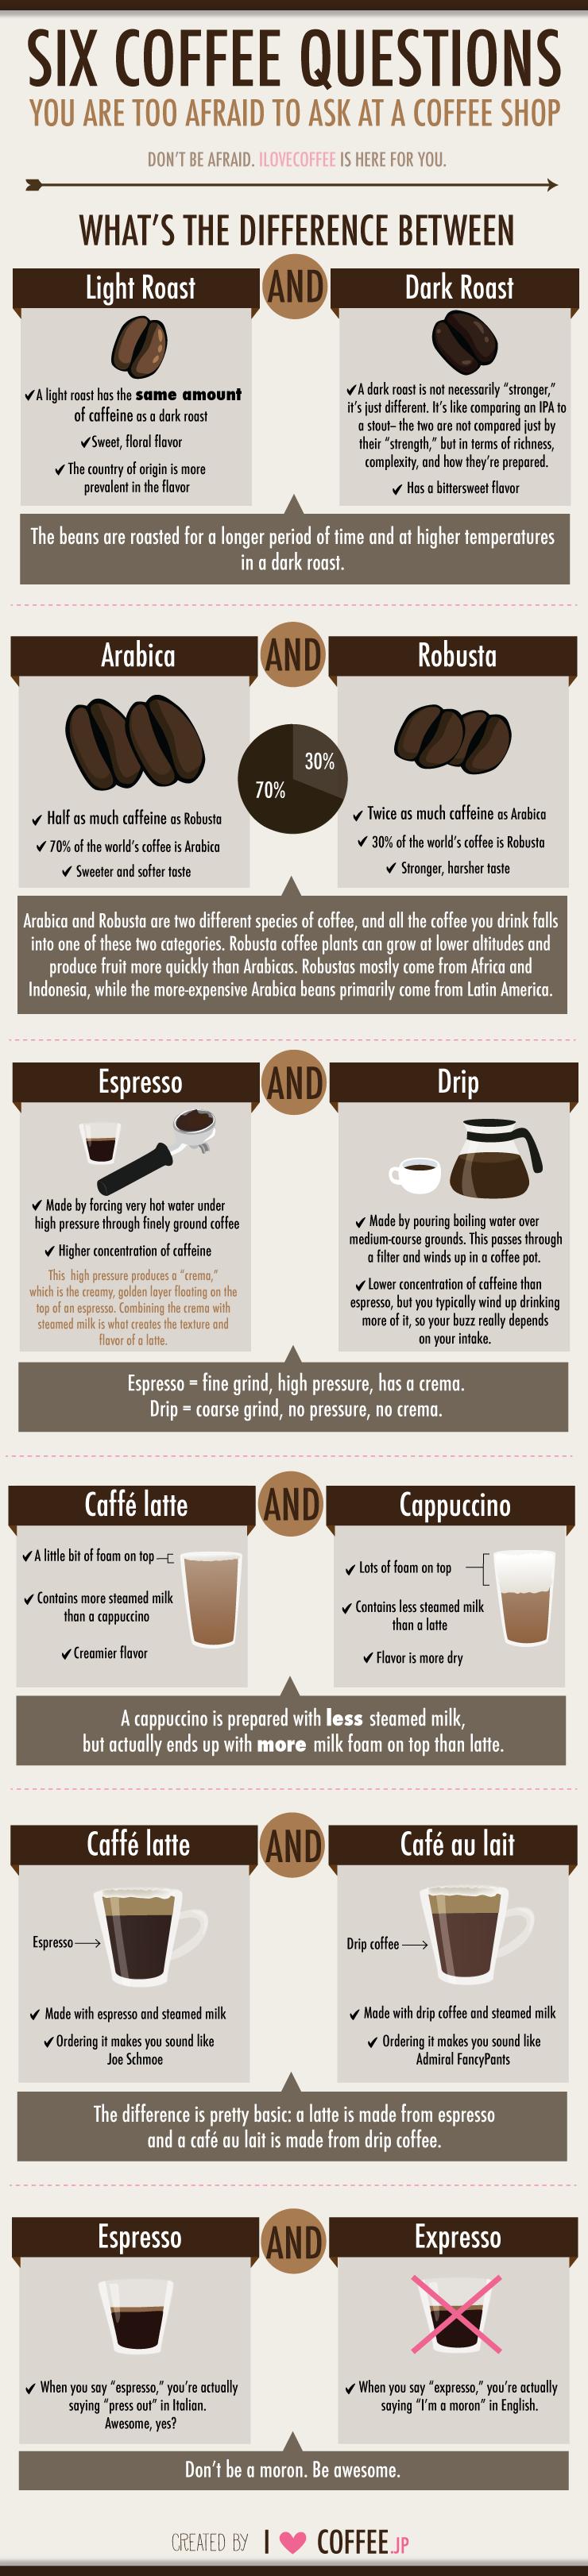 6 Coffee questions you are too afraid to ask at a coffee shop - I Love Coffee